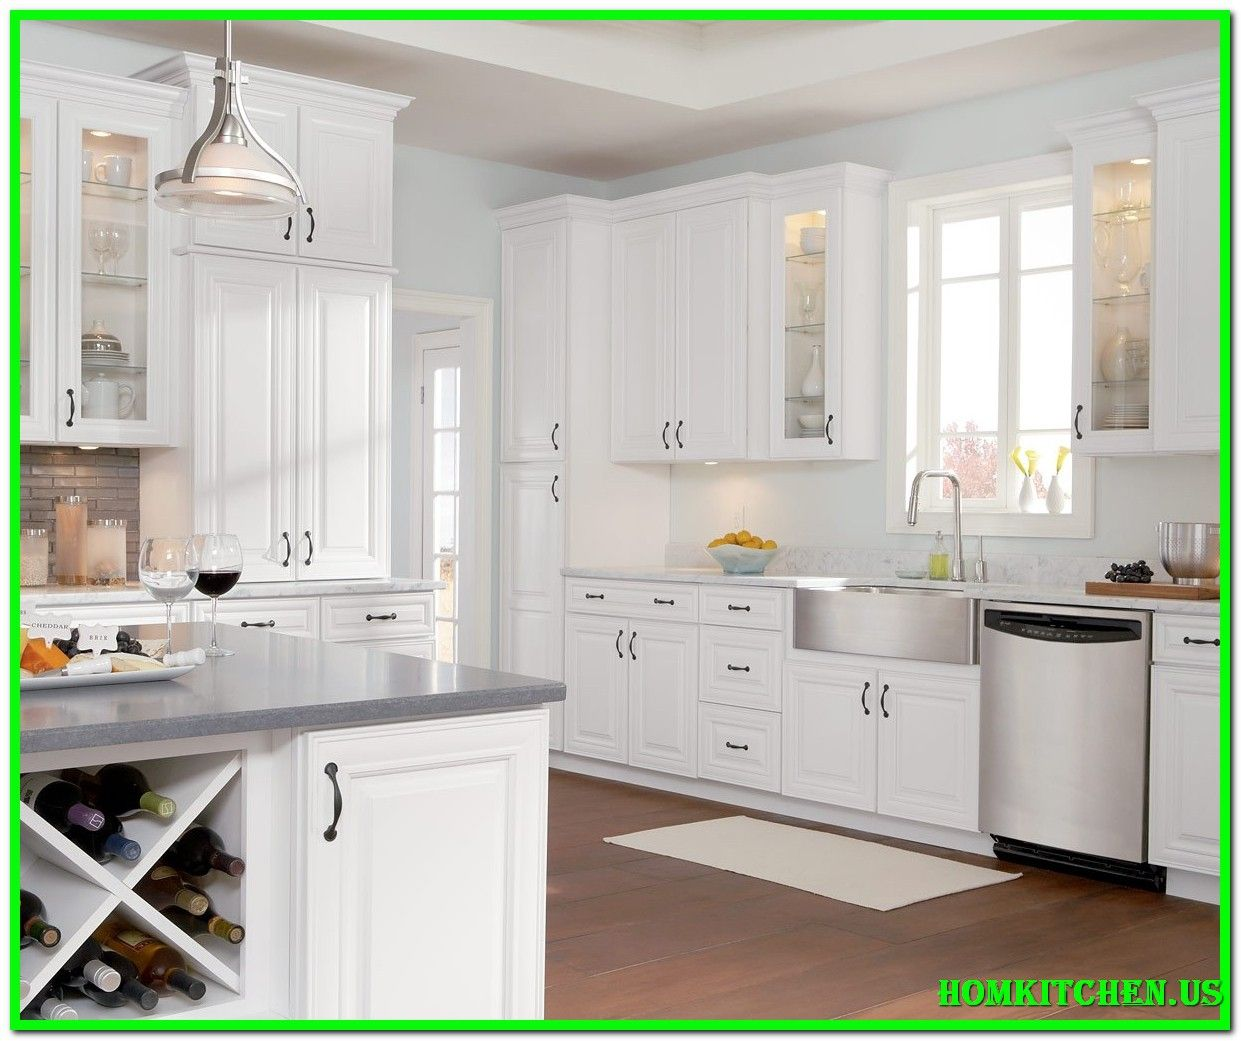 Fresh Kitchen Cabinets Zelienople Pa The Most Elegant And Beautiful Kitchen Cabinets Zelienople Pa Pertaining To Encourage Your Home Found Residence Comfy Wi